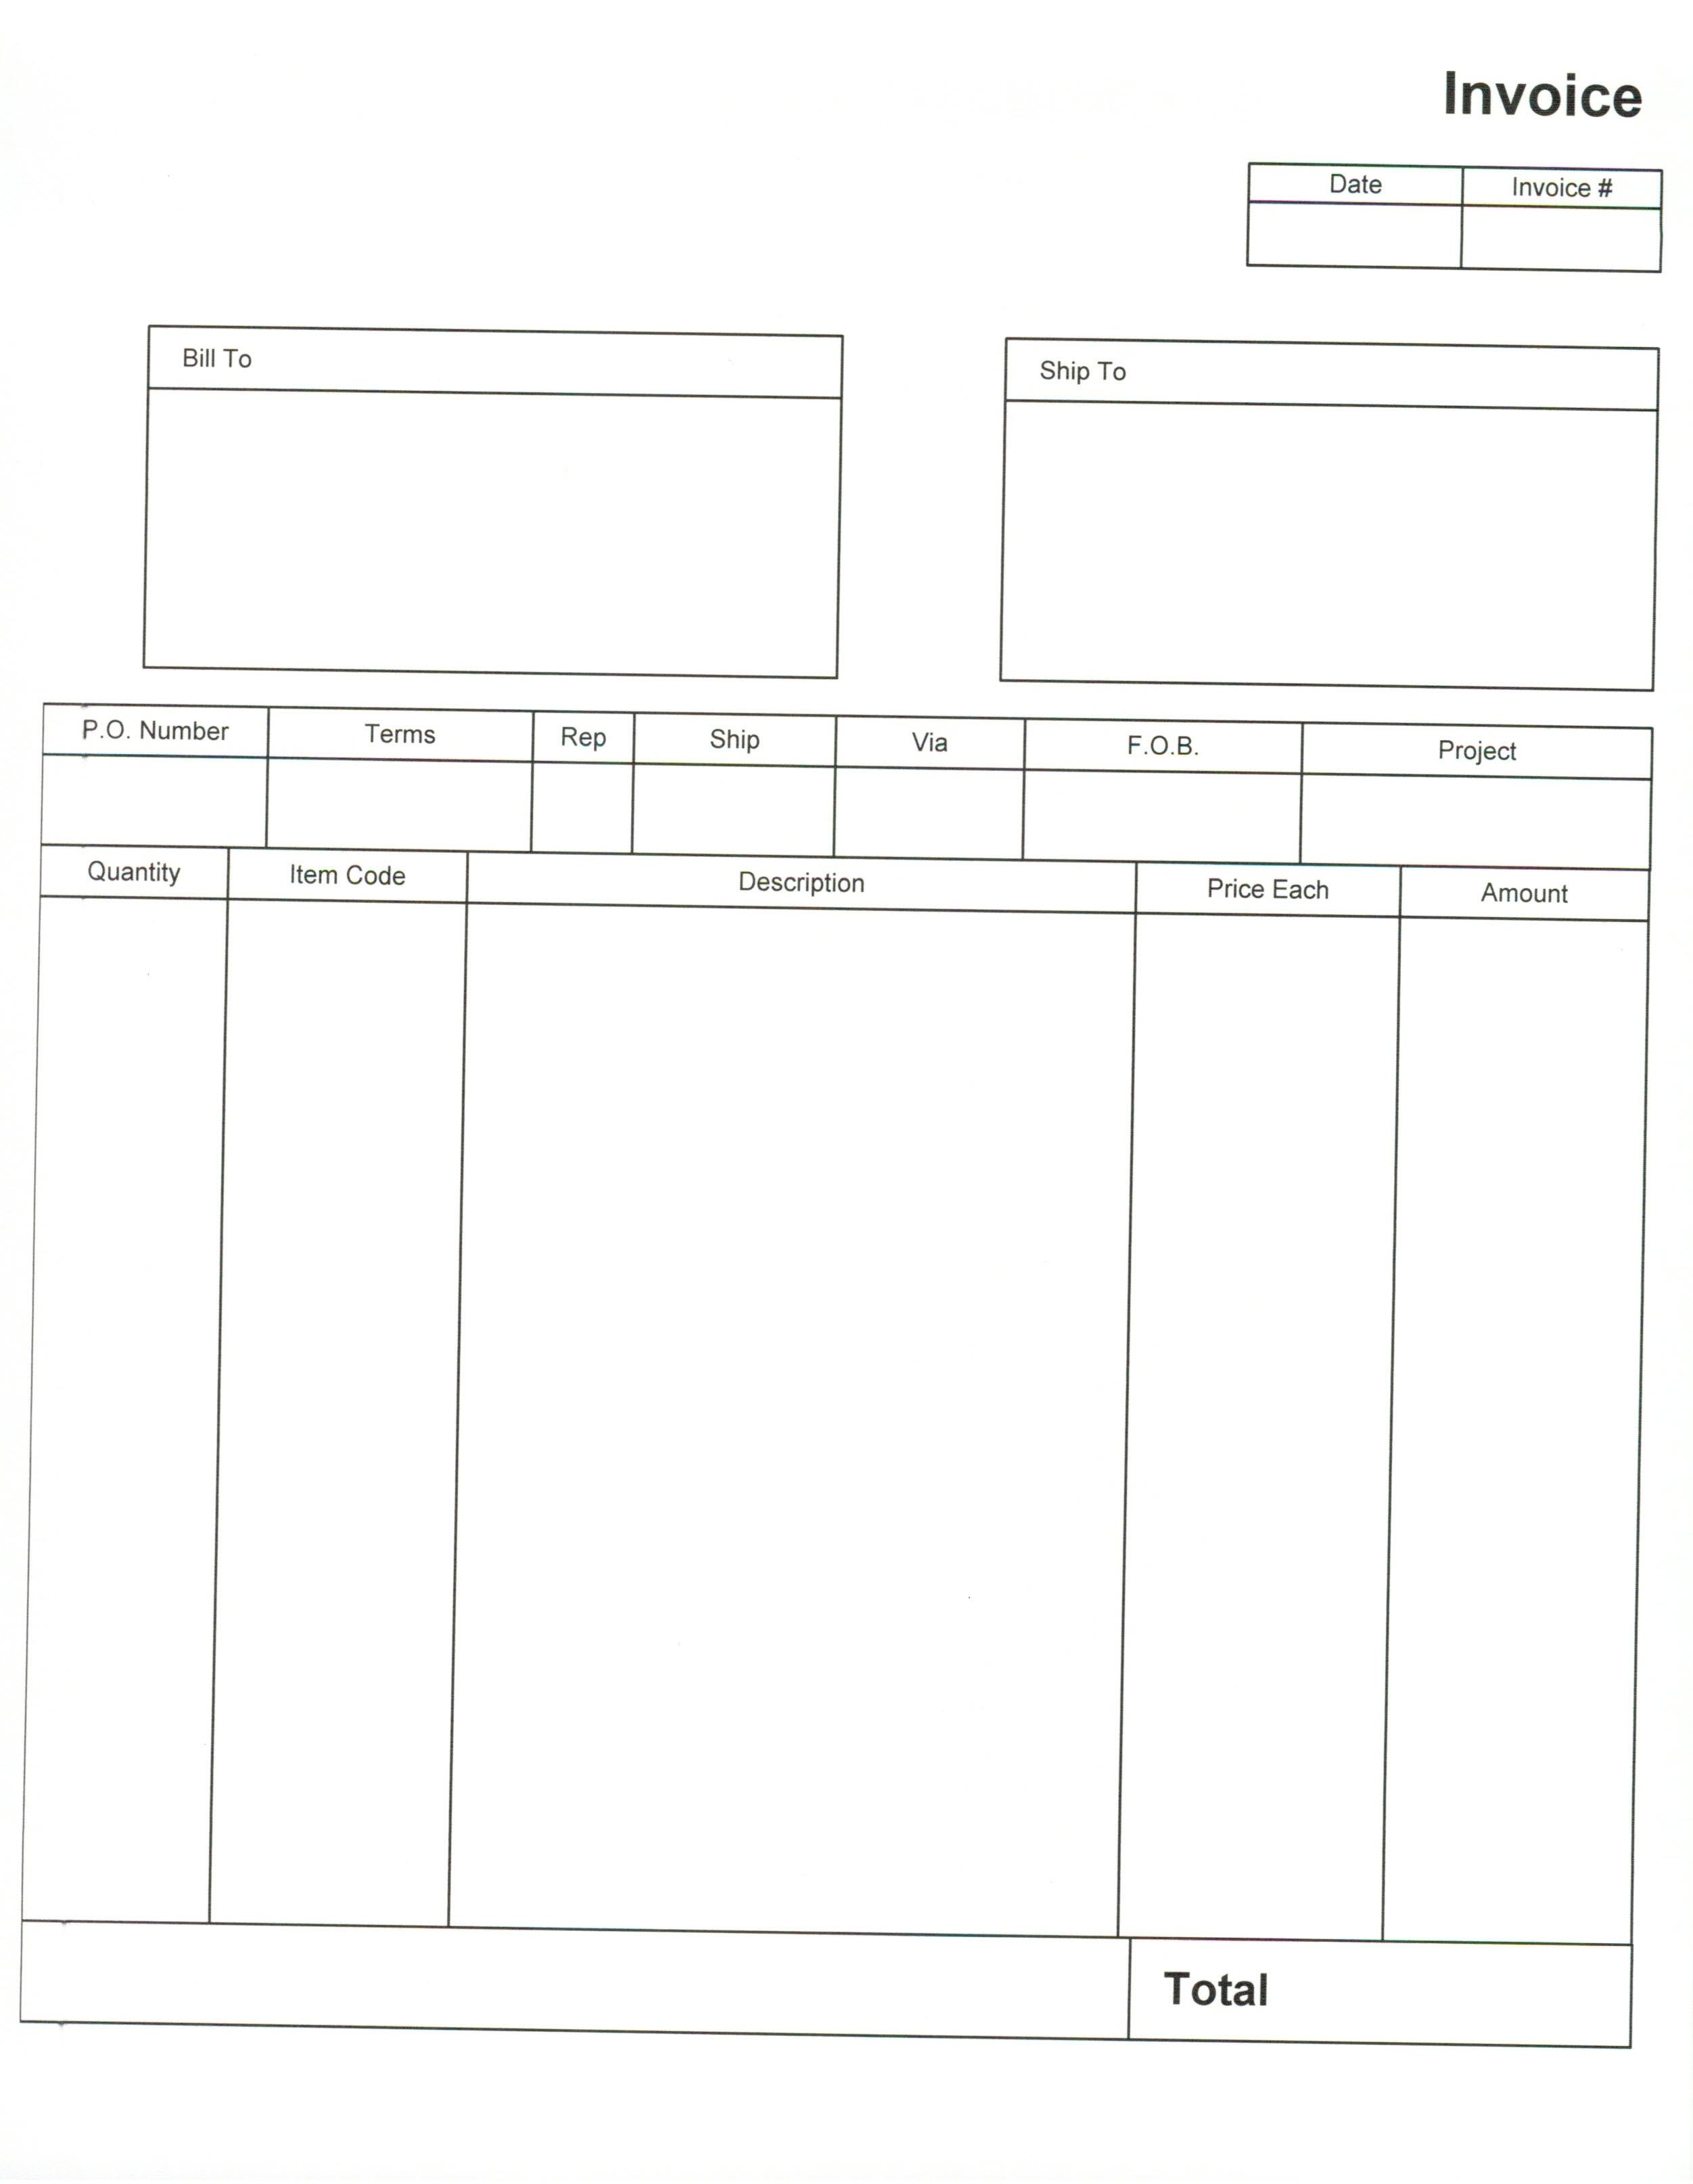 Blank Invoice Pdf Invoice Template Free 2016 Blank Invoice Form Pdf